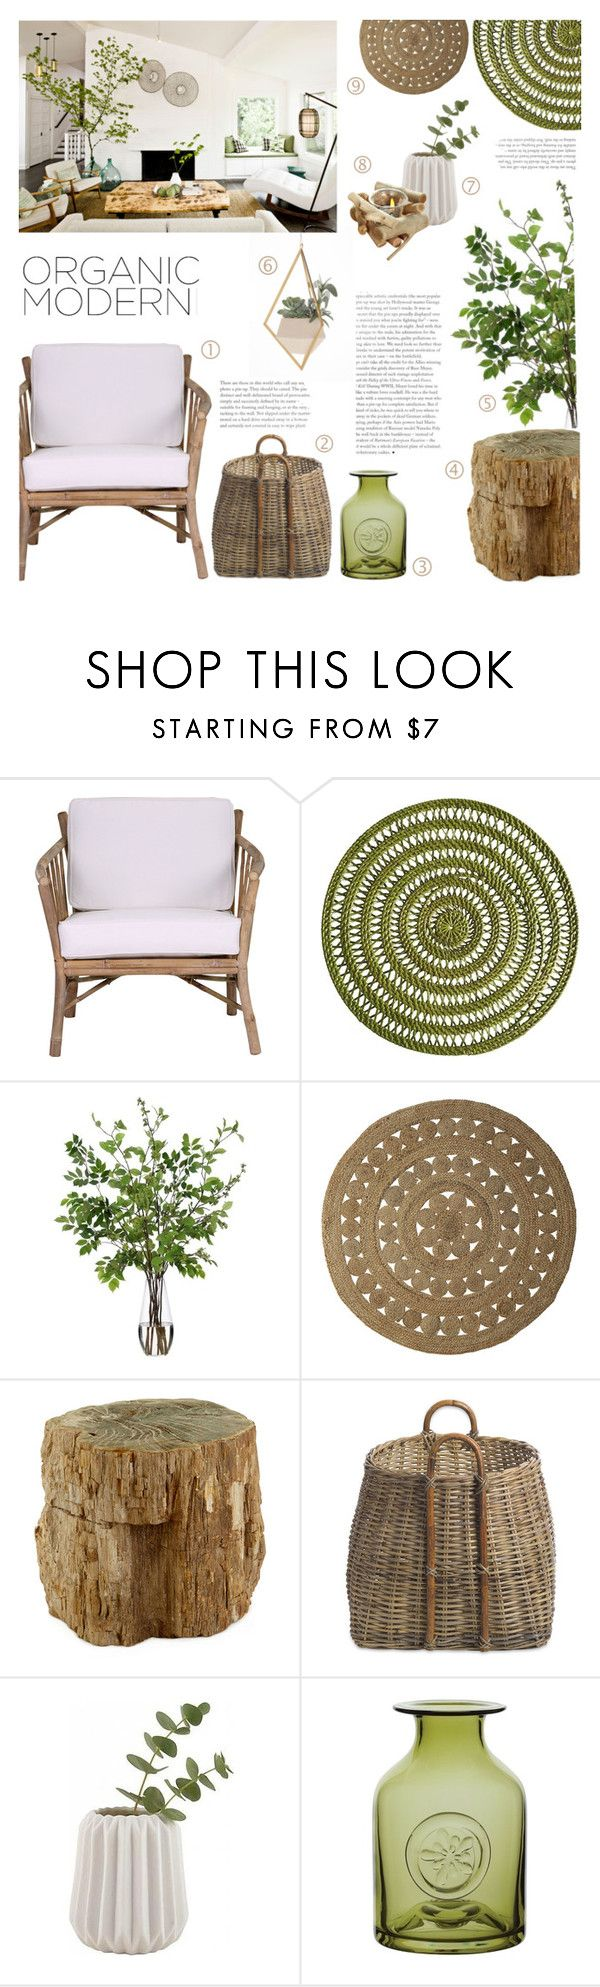 """Organic Modern"" by c-silla on Polyvore featuring interior, interiors, interior design, home, home decor, interior decorating, Dot & Bo, Pier 1 Imports, Diane James and Serena & Lily"